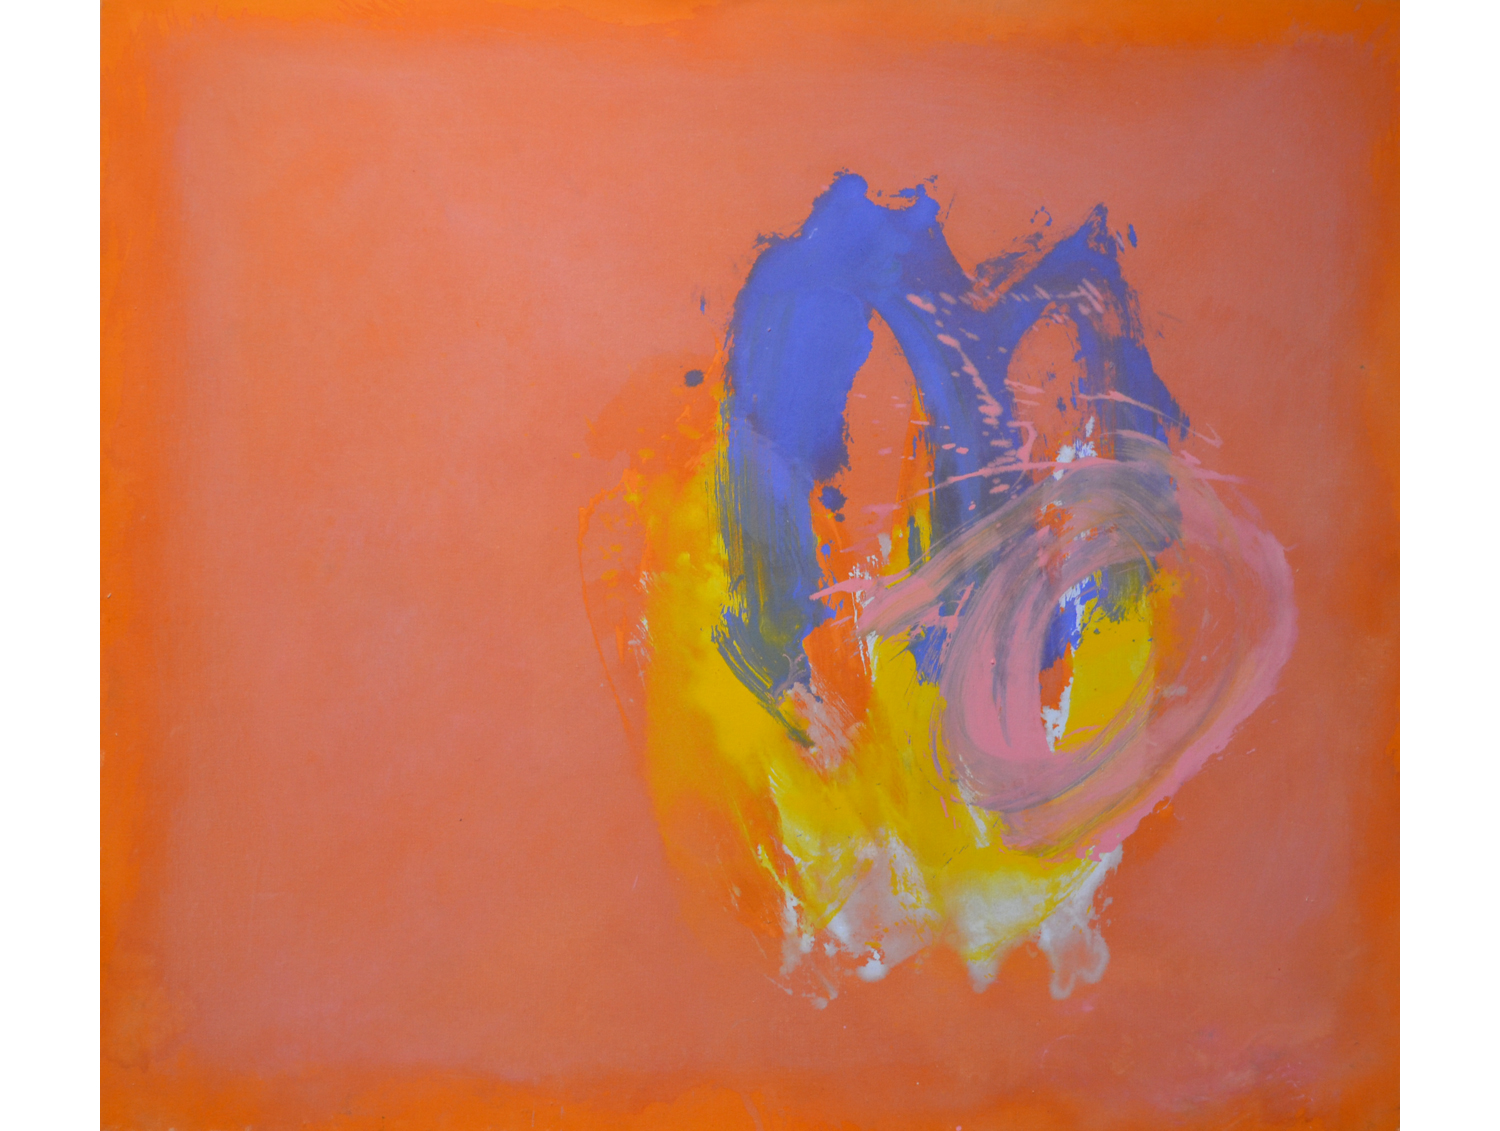 Perne #6,  1978 Acrylic on canvas 57 x 65 inches